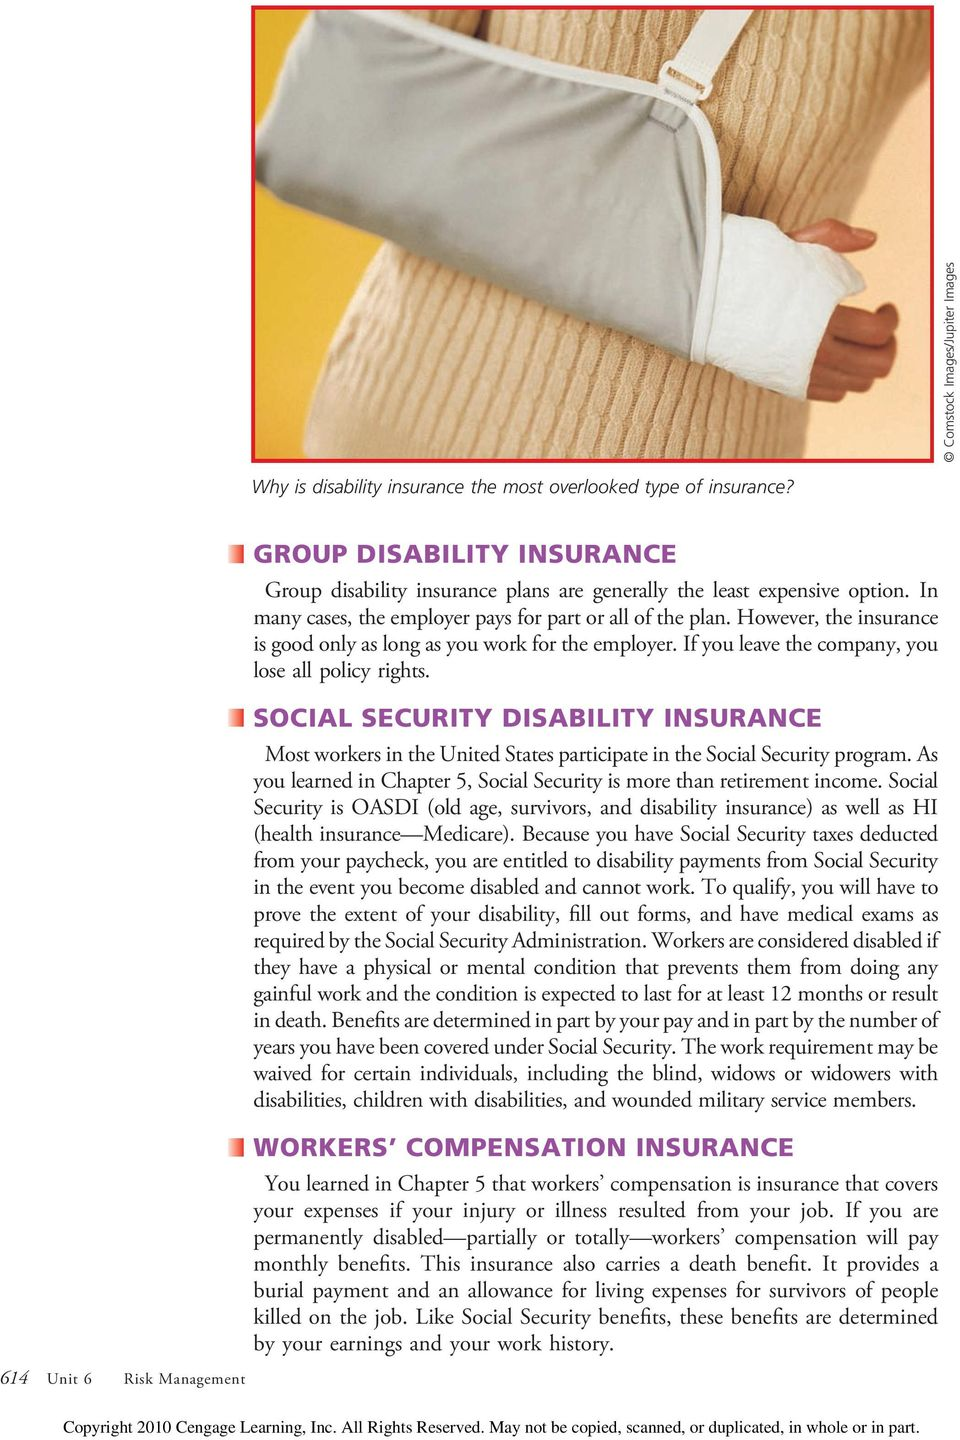 SOCIAL SECURITY DISABILITY INSURANCE Most workers i the Uited States participate i the Social Security program. As you leared i Chapter 5, Social Security is more tha retiremet icome.